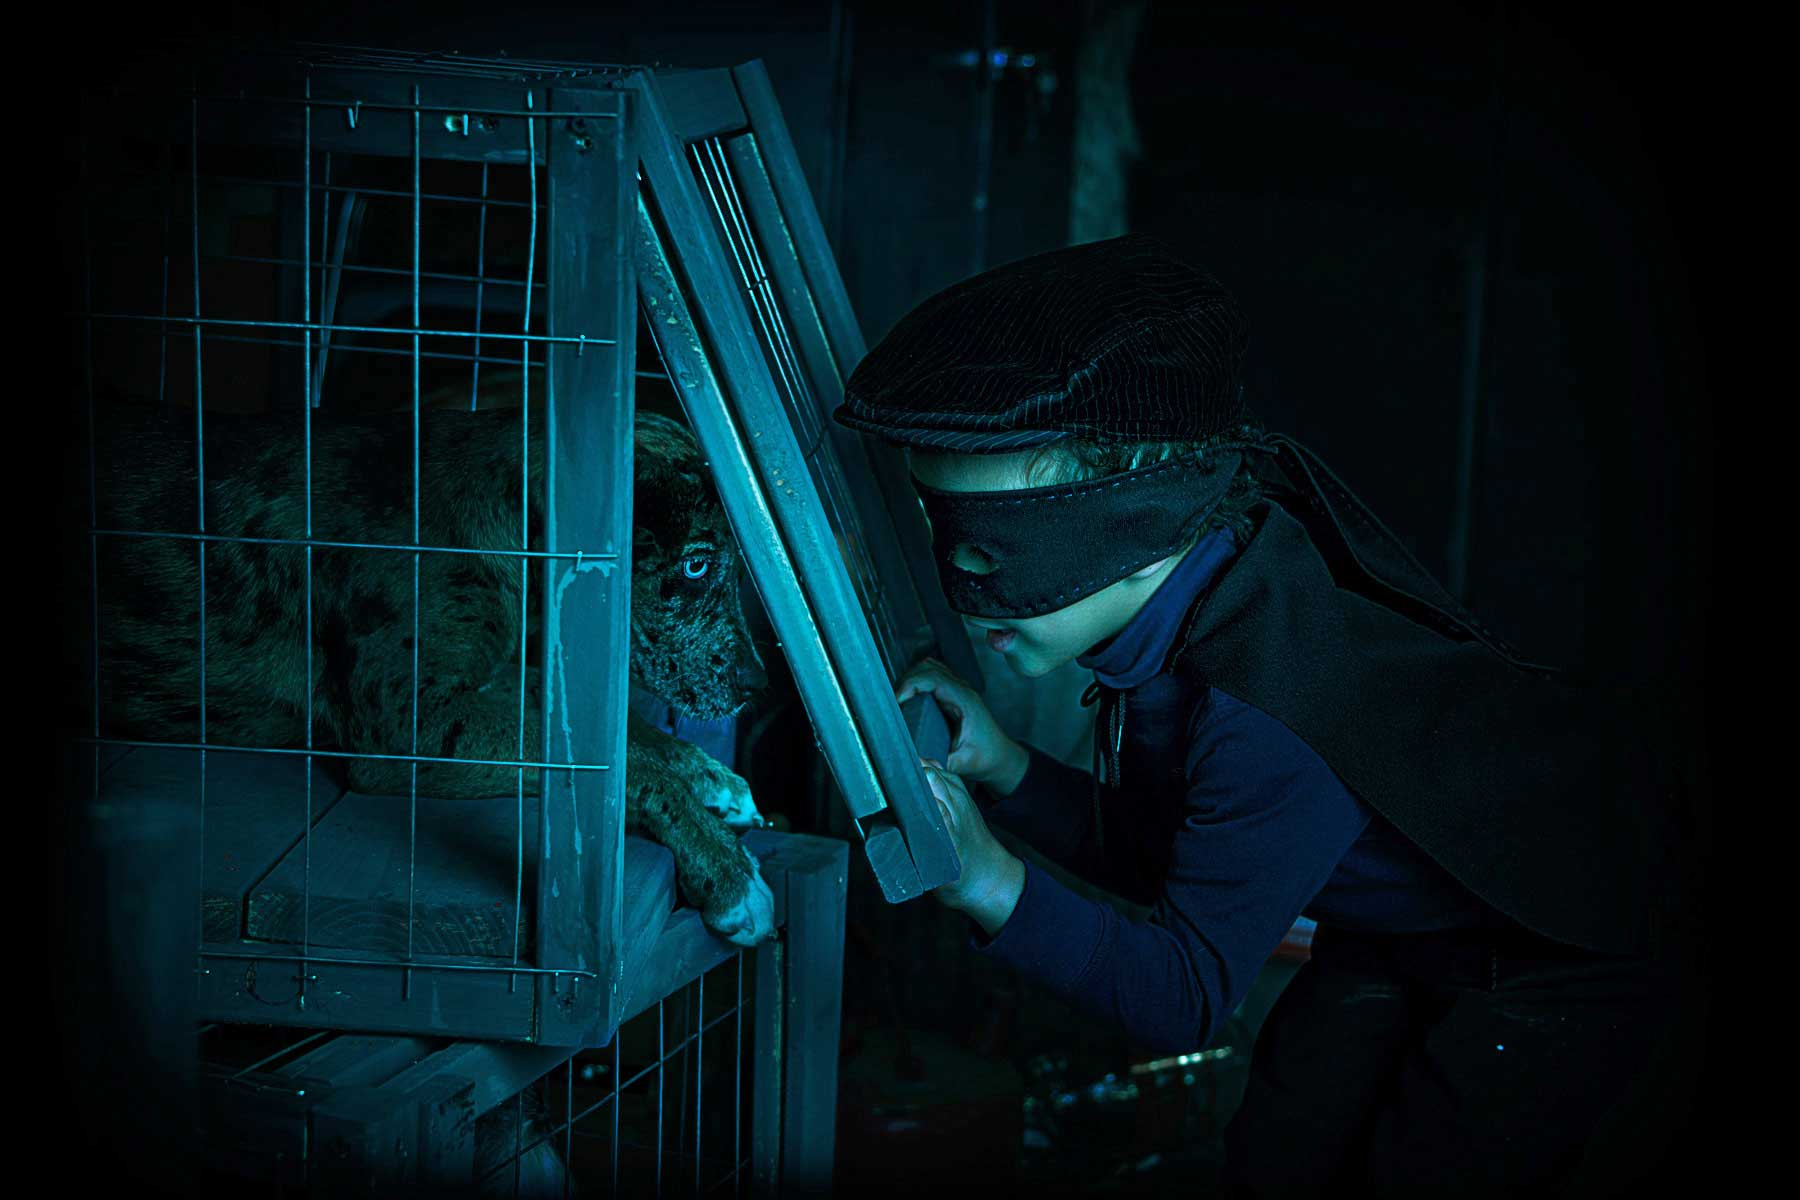 Eric Sahrmann_Dog Catcher_Scene6_Escape.jpg